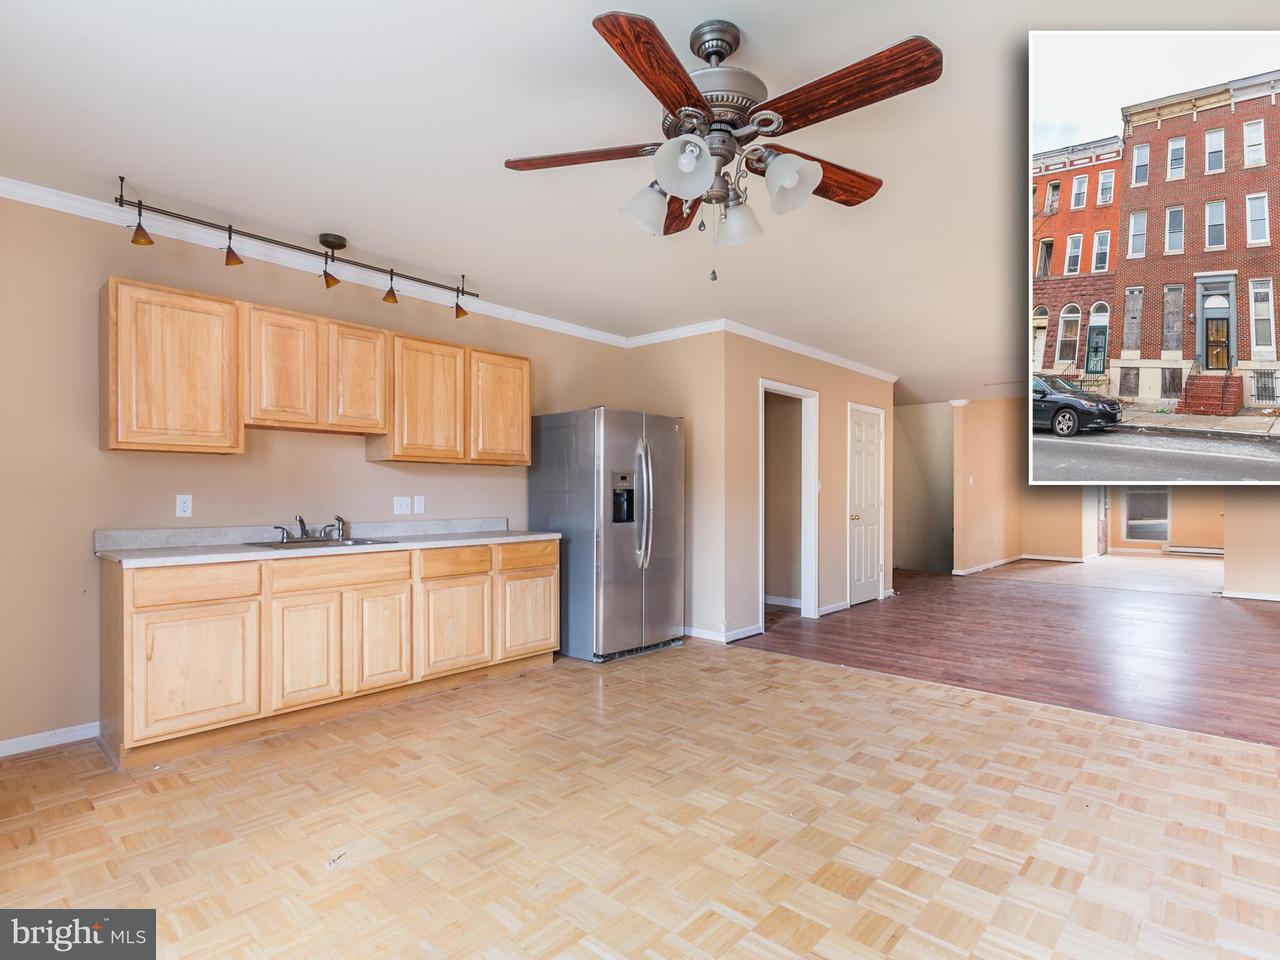 Other Residential for Sale at 1708 Mcculloh St Baltimore, Maryland 21217 United States